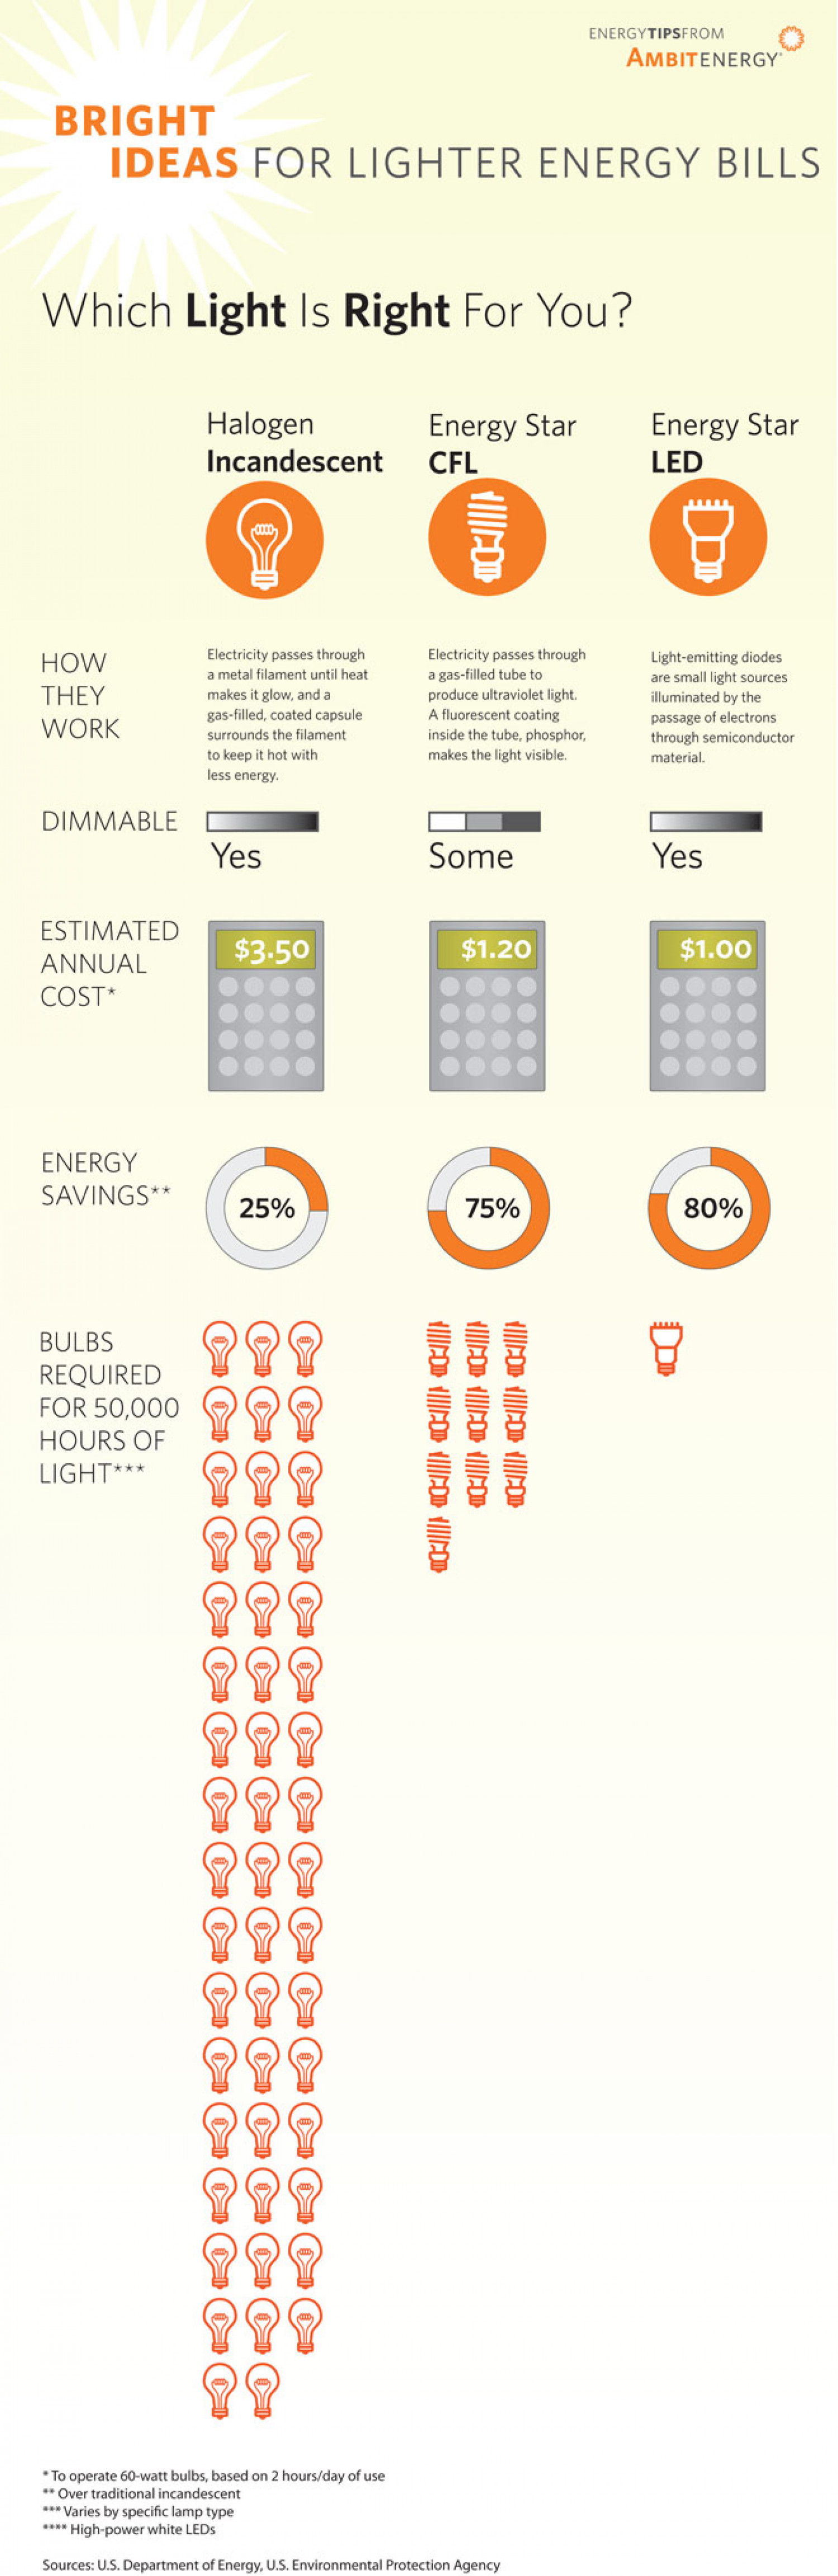 Which Light is Right for You Infographic